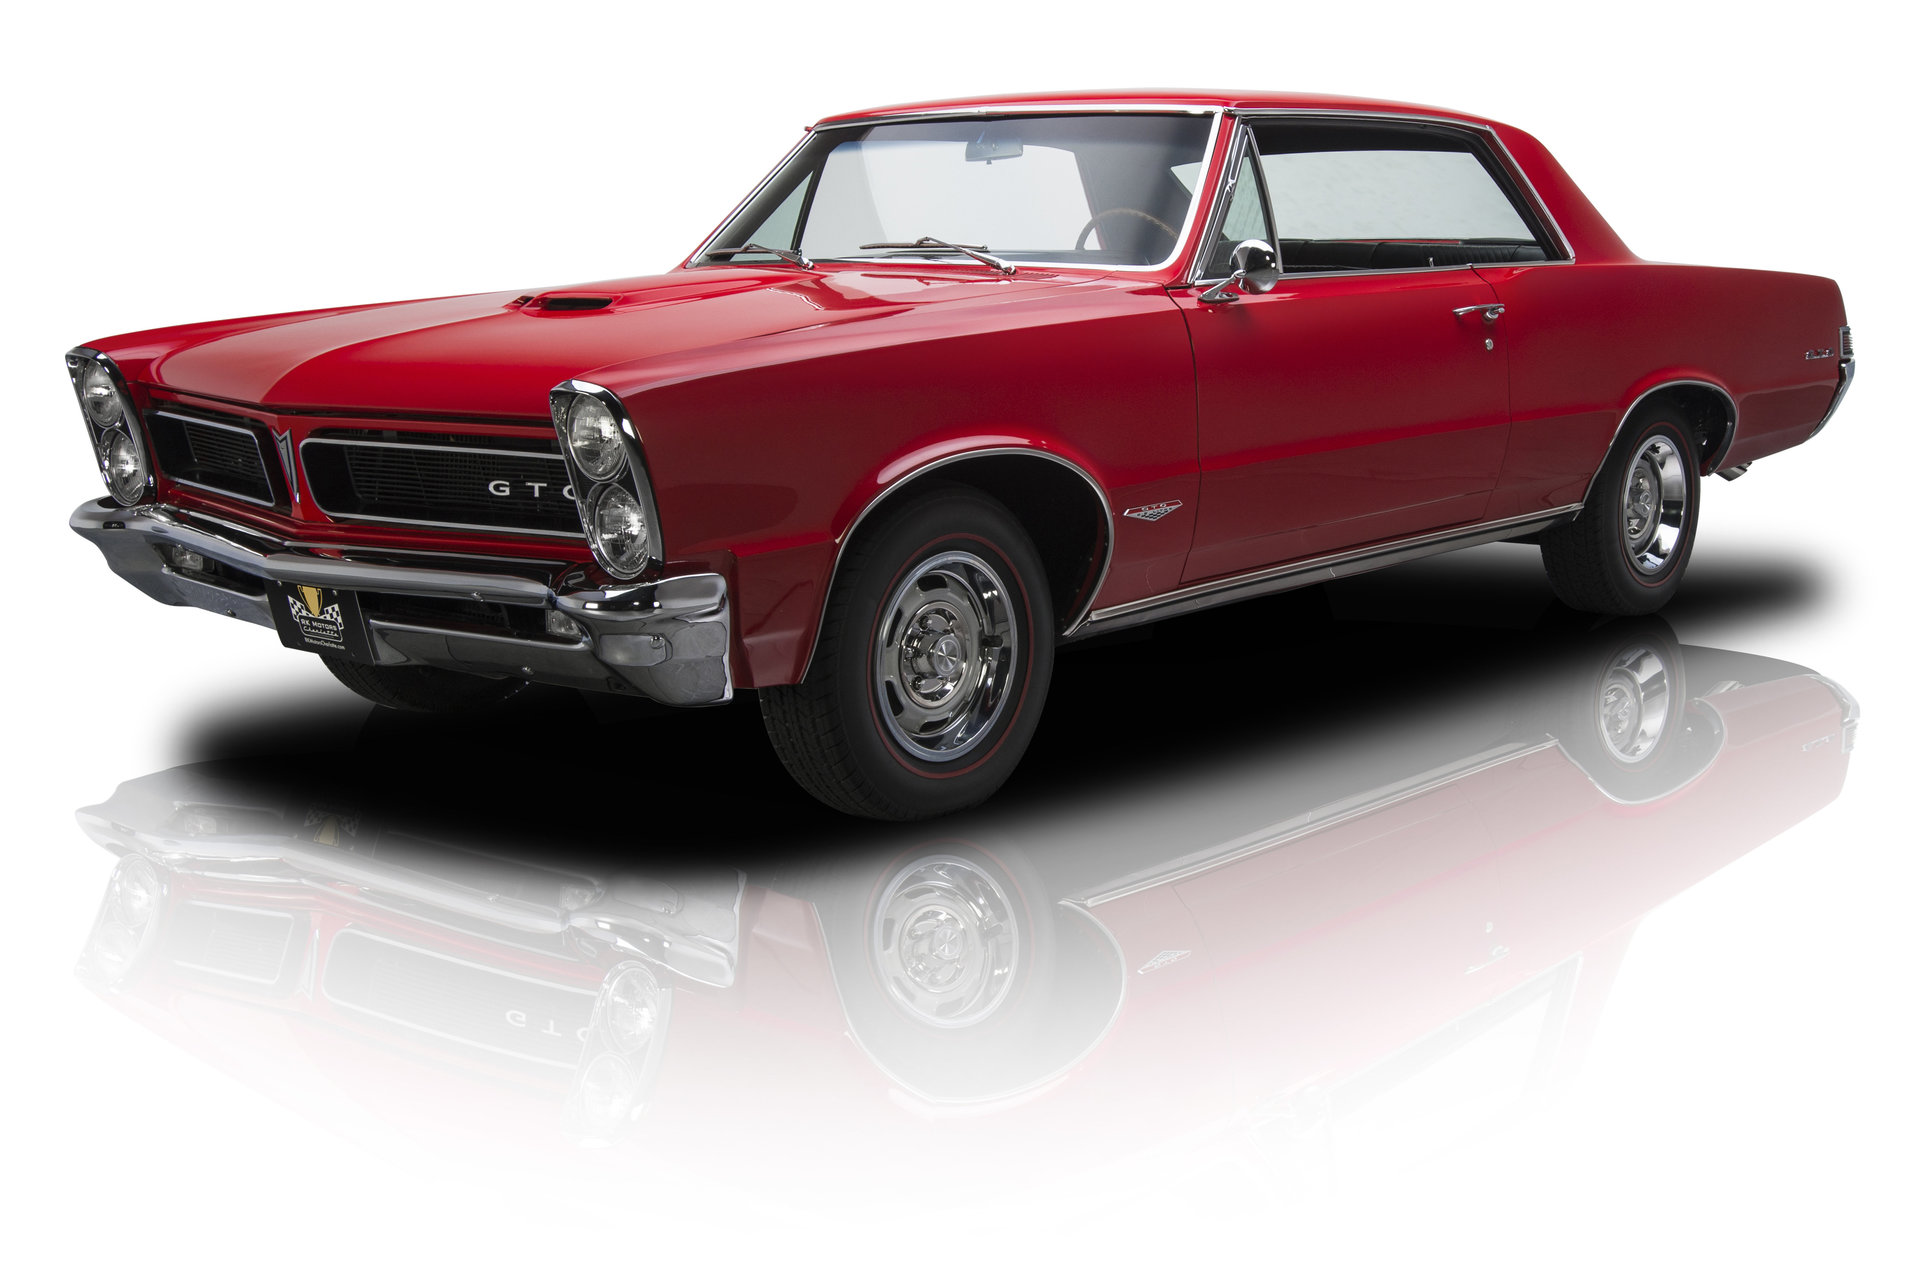 135729 1965 pontiac gto rk motors classic and performance cars for sale. Black Bedroom Furniture Sets. Home Design Ideas